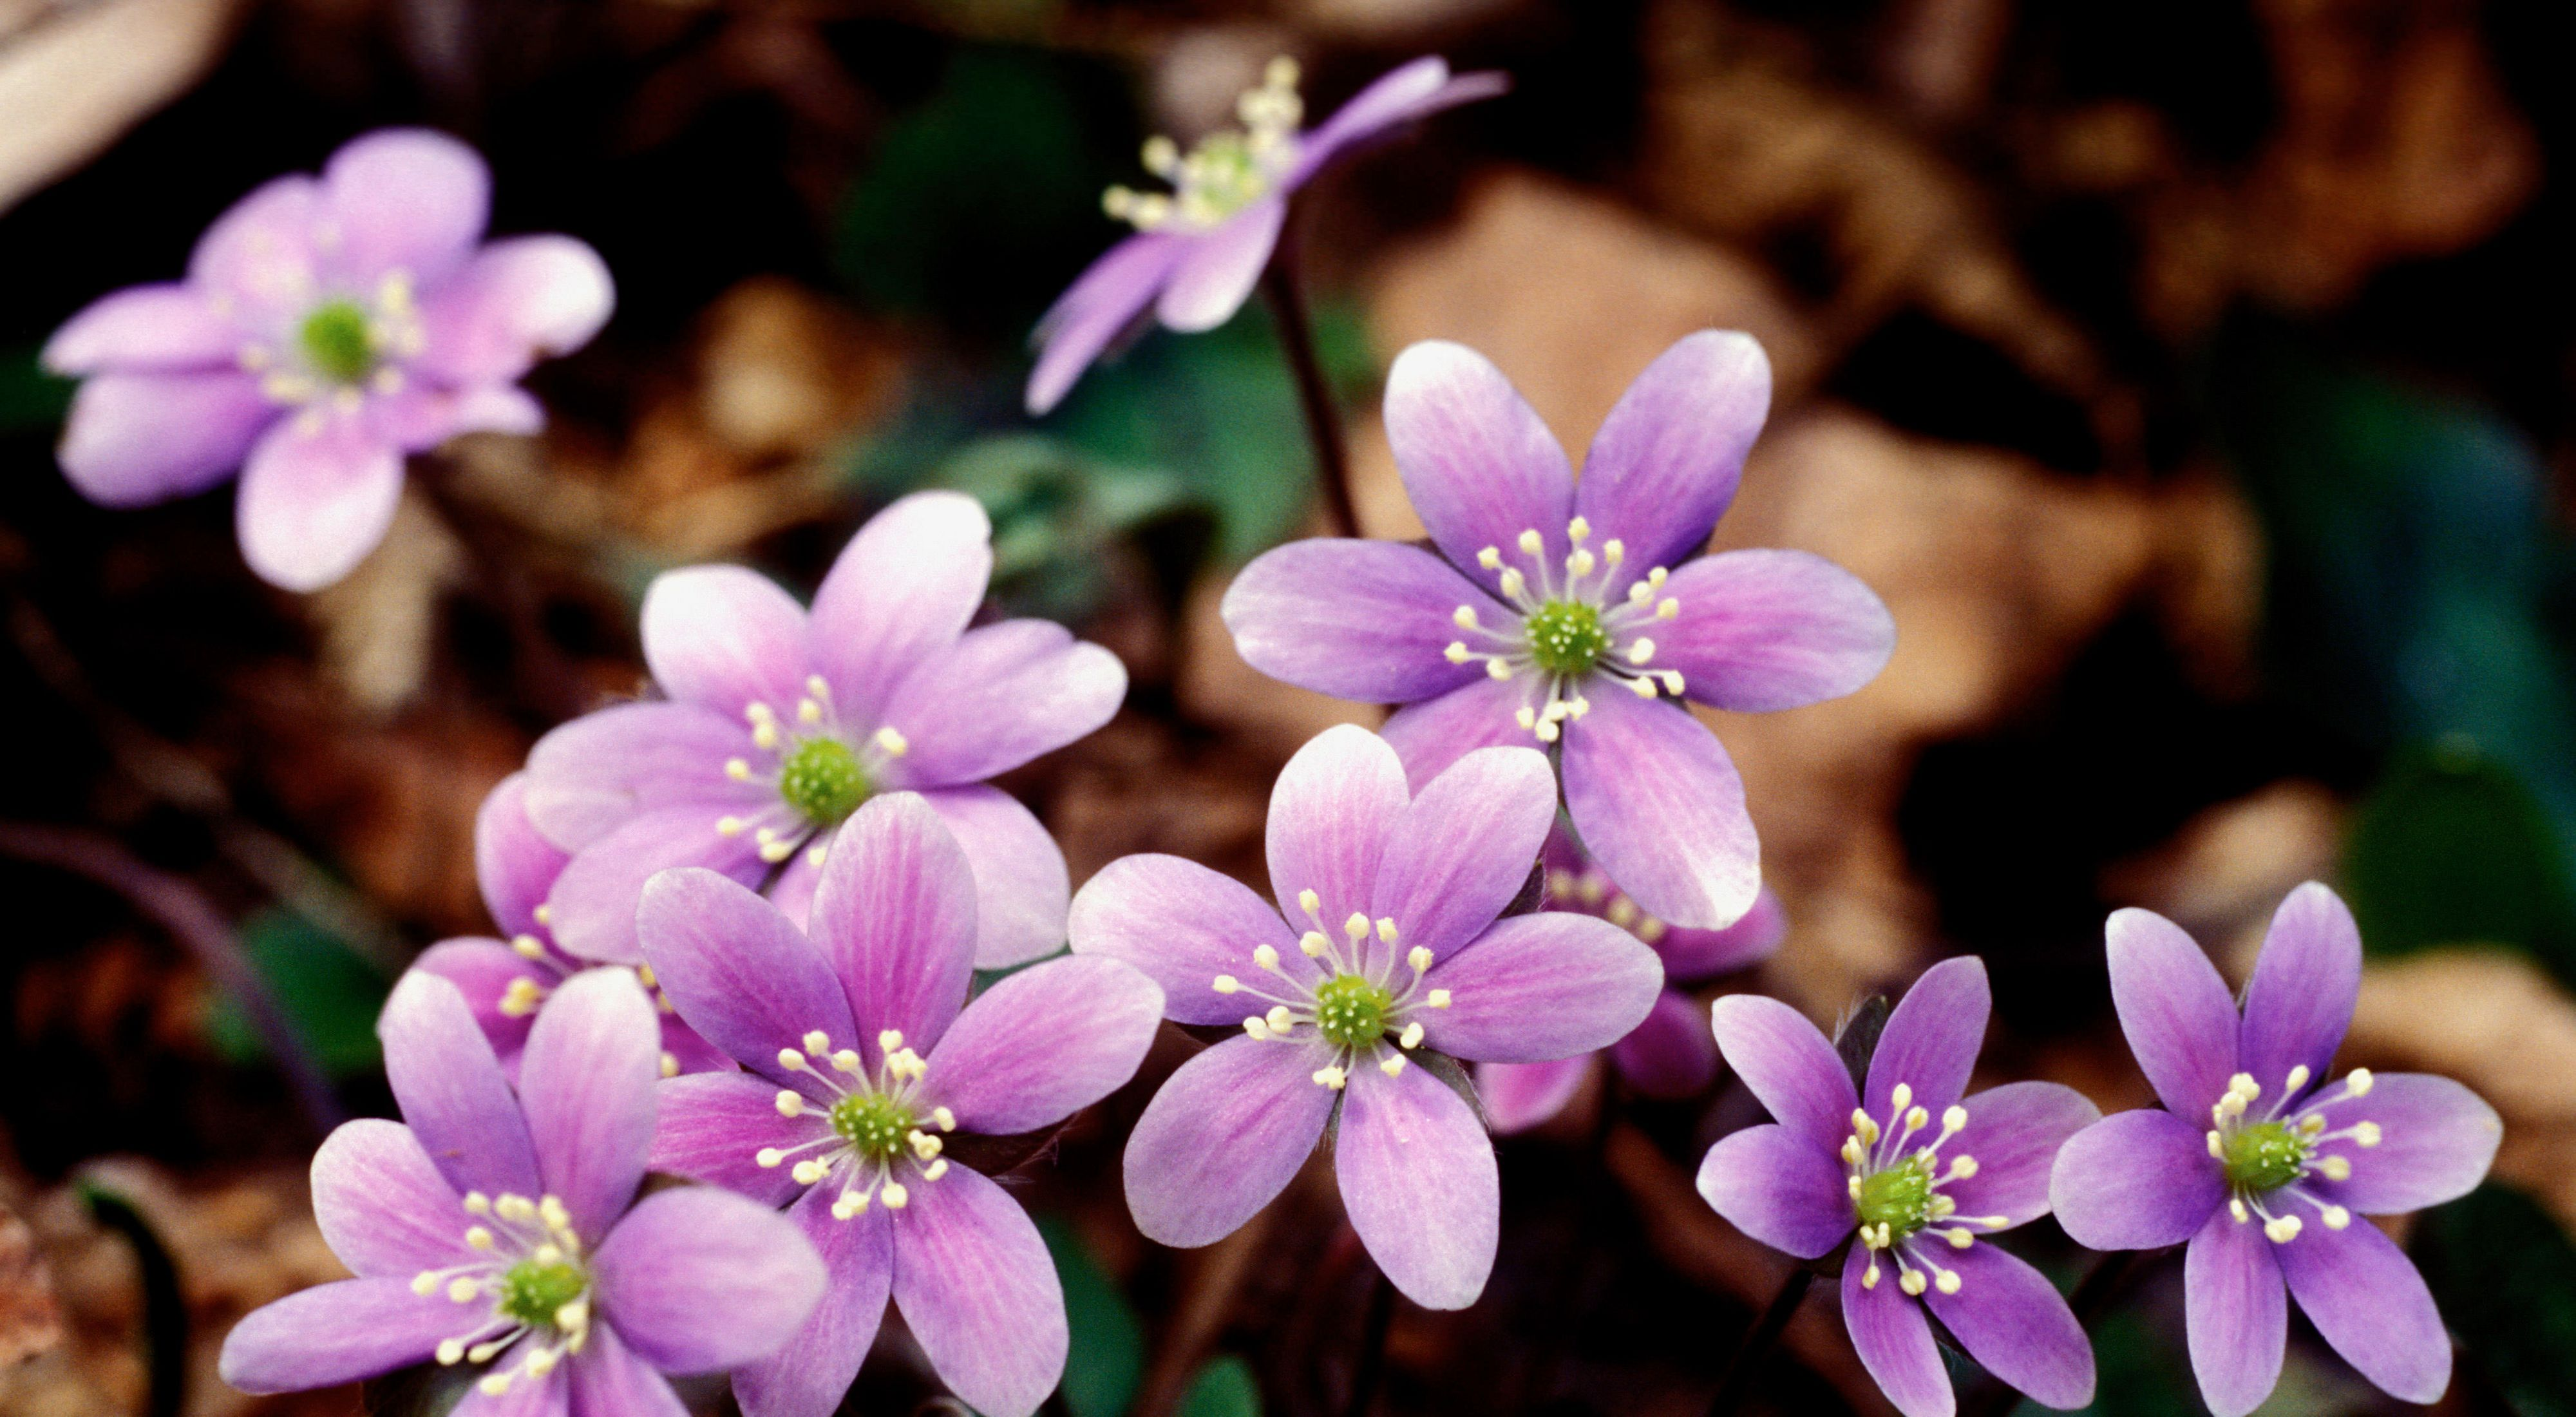 Closeup of a bunch of round lobed light purple hepatica wildflowers